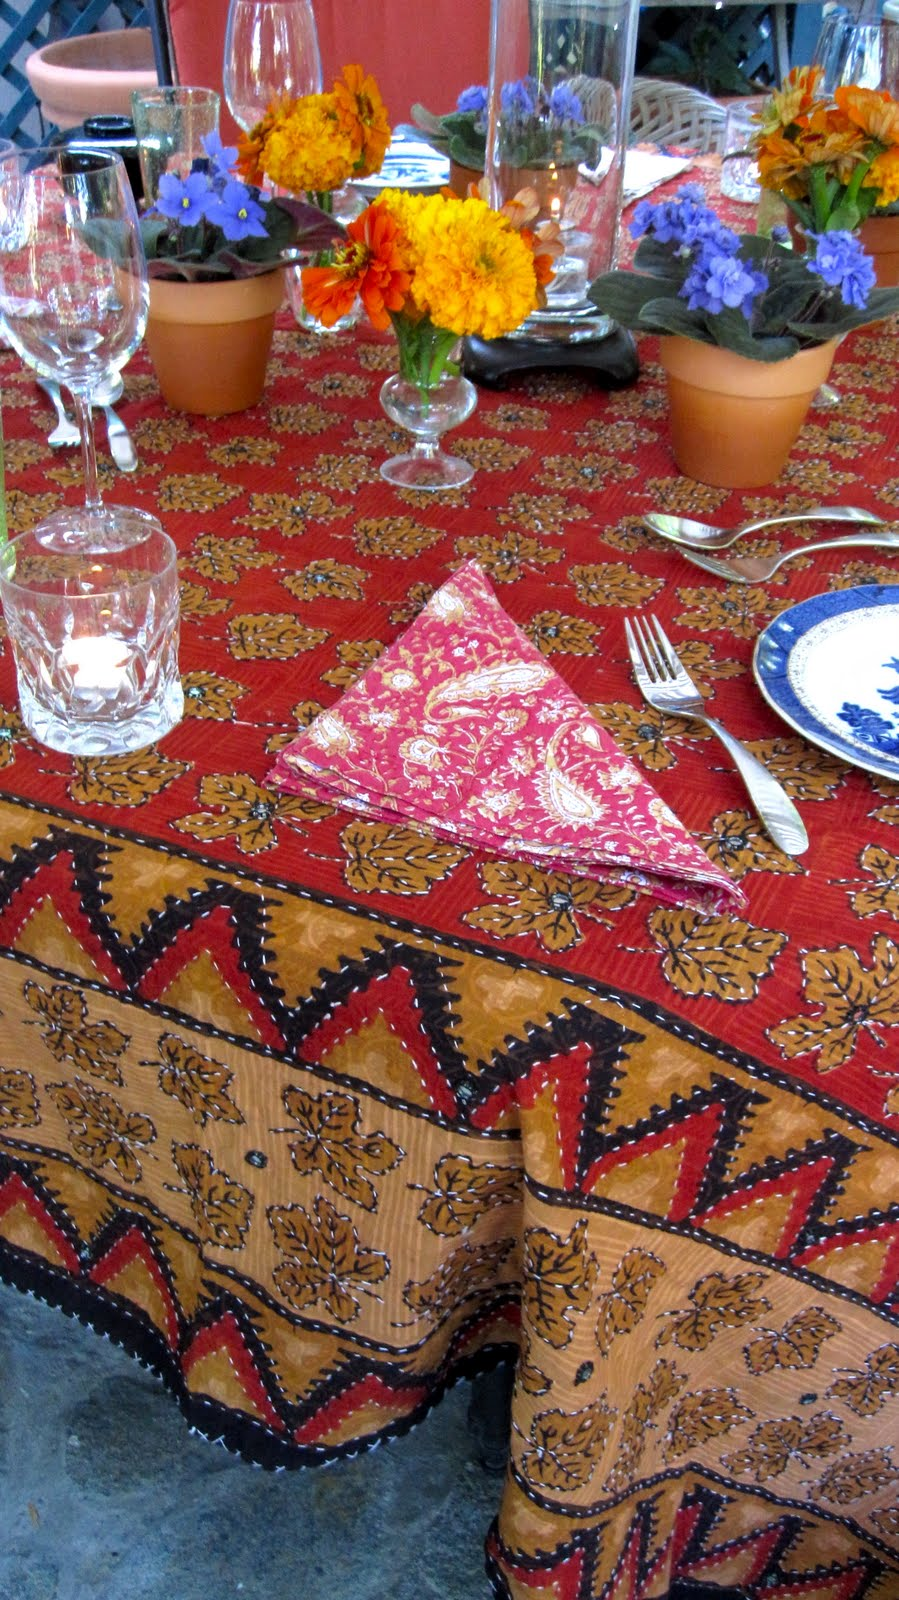 I especially like the cushions on the chairs in Sunbrella Trax/Persimmon. A bright way to see the close of summer. Make summer last a little longer! & Joe Ruggiero Designer/ HGTV Host: Indian Themed Dinner With Bright ...